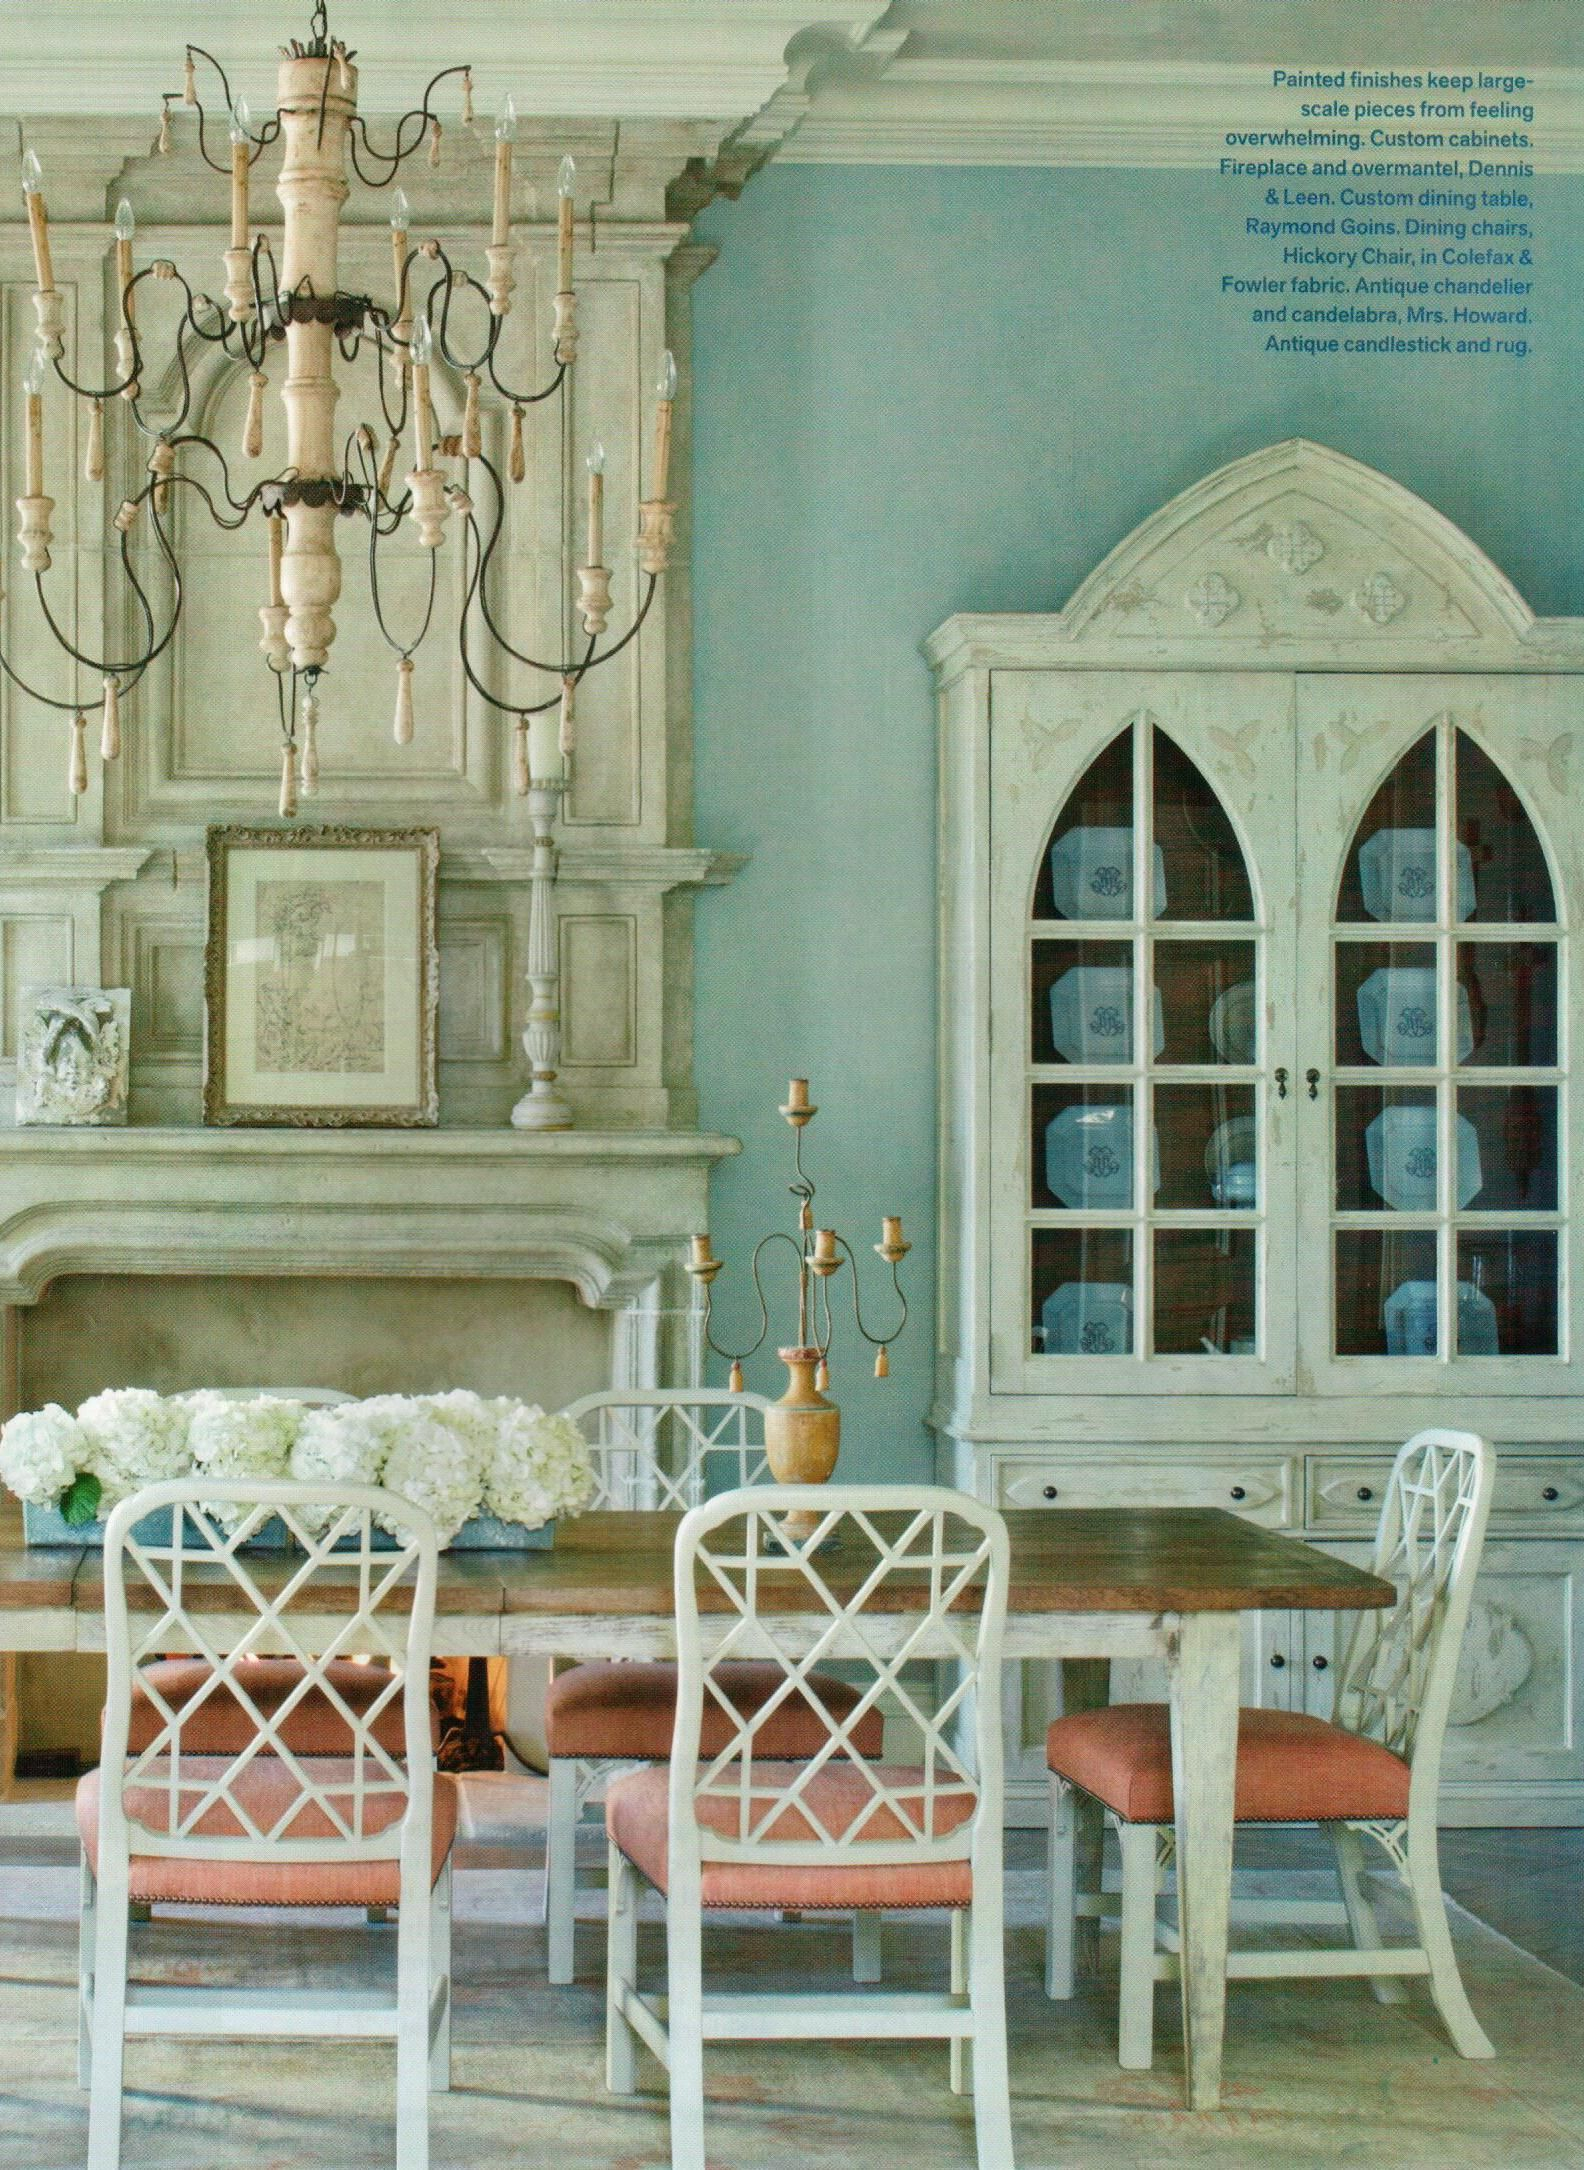 Suzanne Kasler, Hickory Chair, Linwood chair Dining room